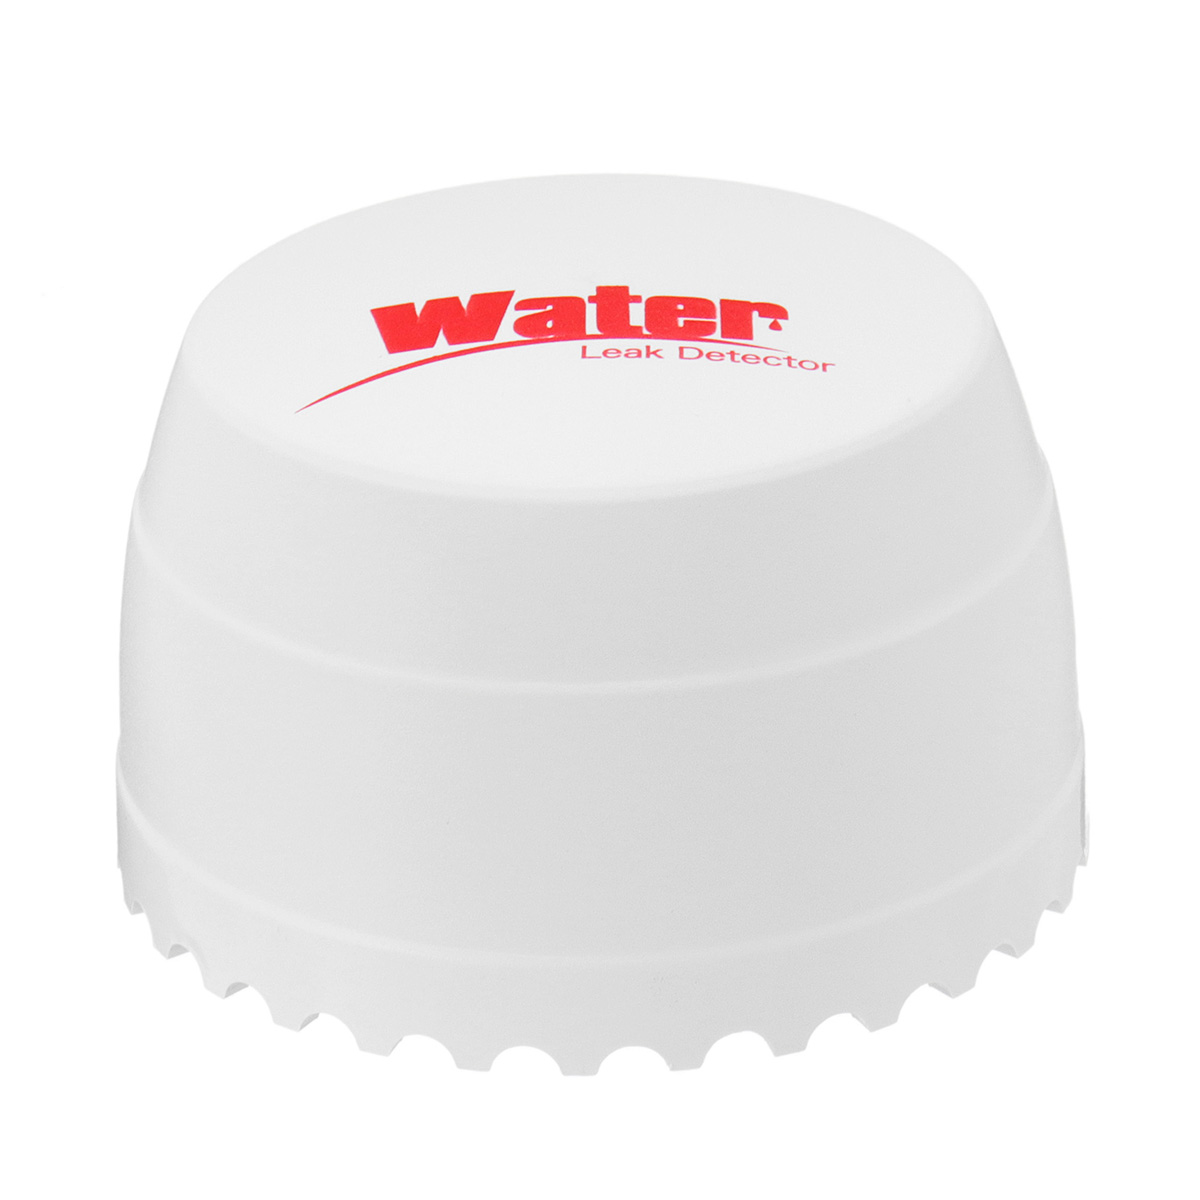 DY-SQ100B Water Leakage Detector Rustproof Sensor Alarm 433MHz for Security Home Alarm System